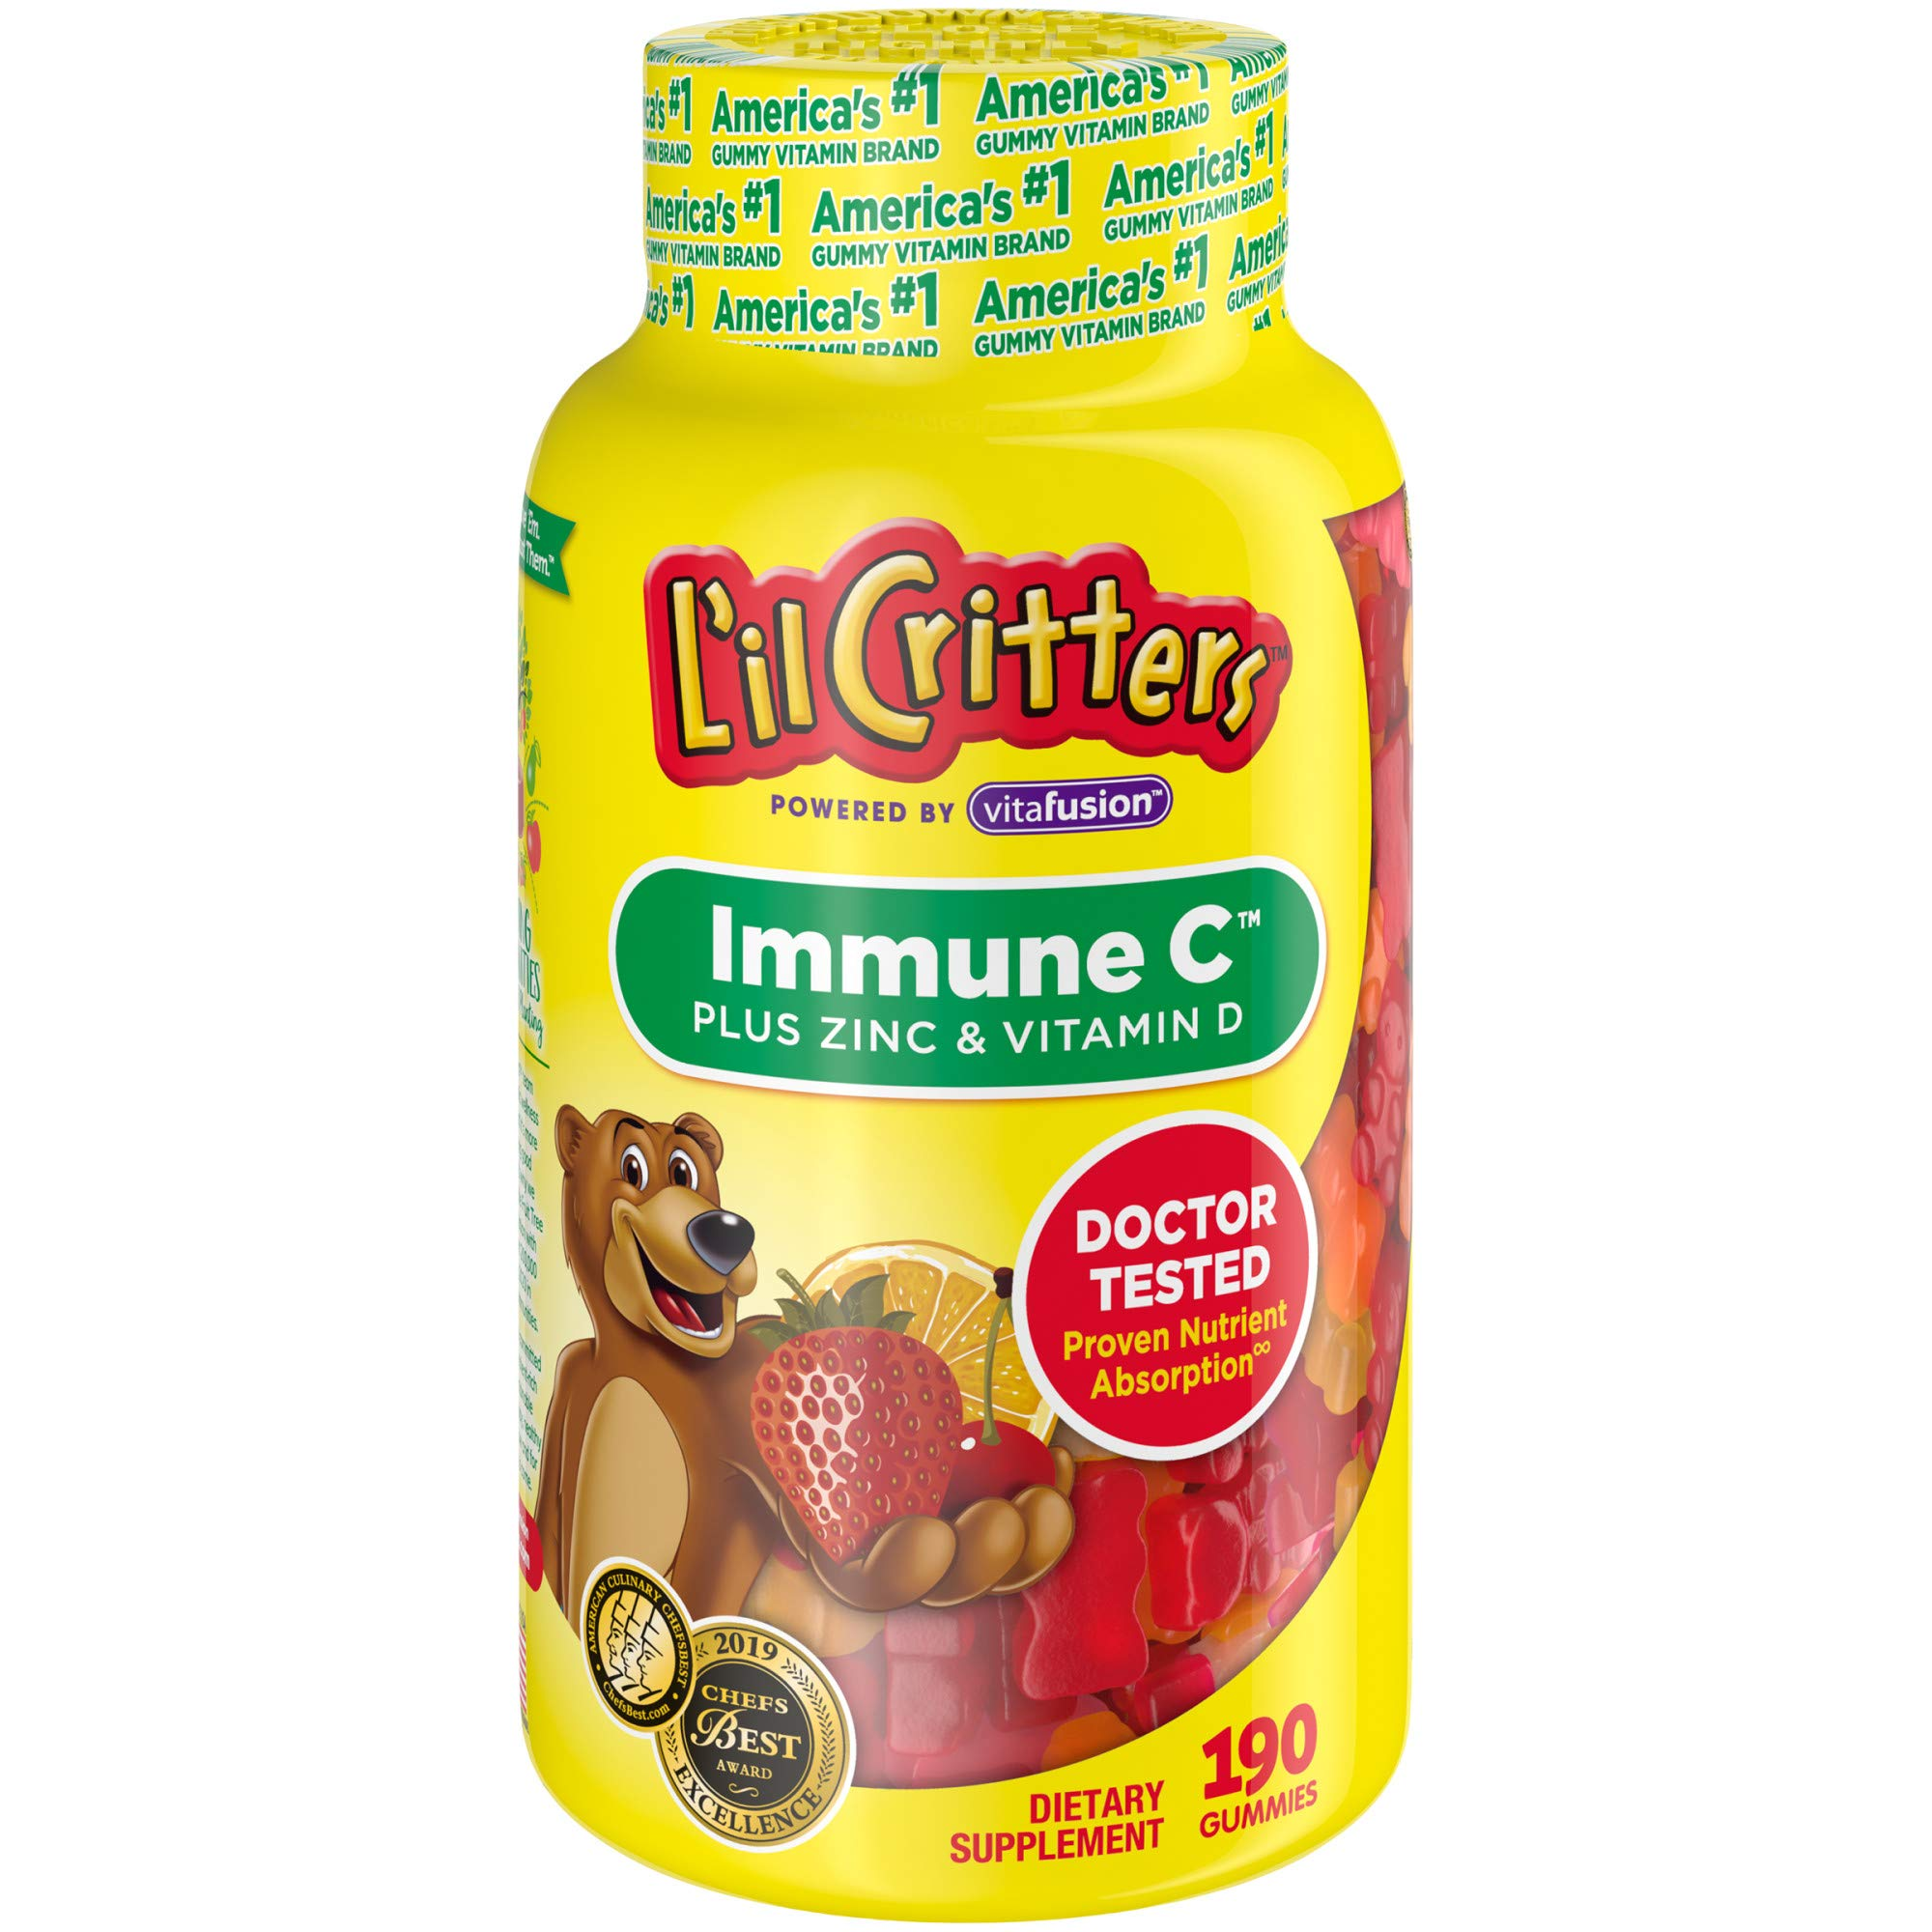 L'il Critters Kids Immune C Gummy Supplement: Vitamins C, D3 & Zinc for Immune Support, 60 or 120mg Vitamin C Per Serving, 190 Count (95-190 Day Supply), from America's No. 1 Kids Gummy Vitamin Brand